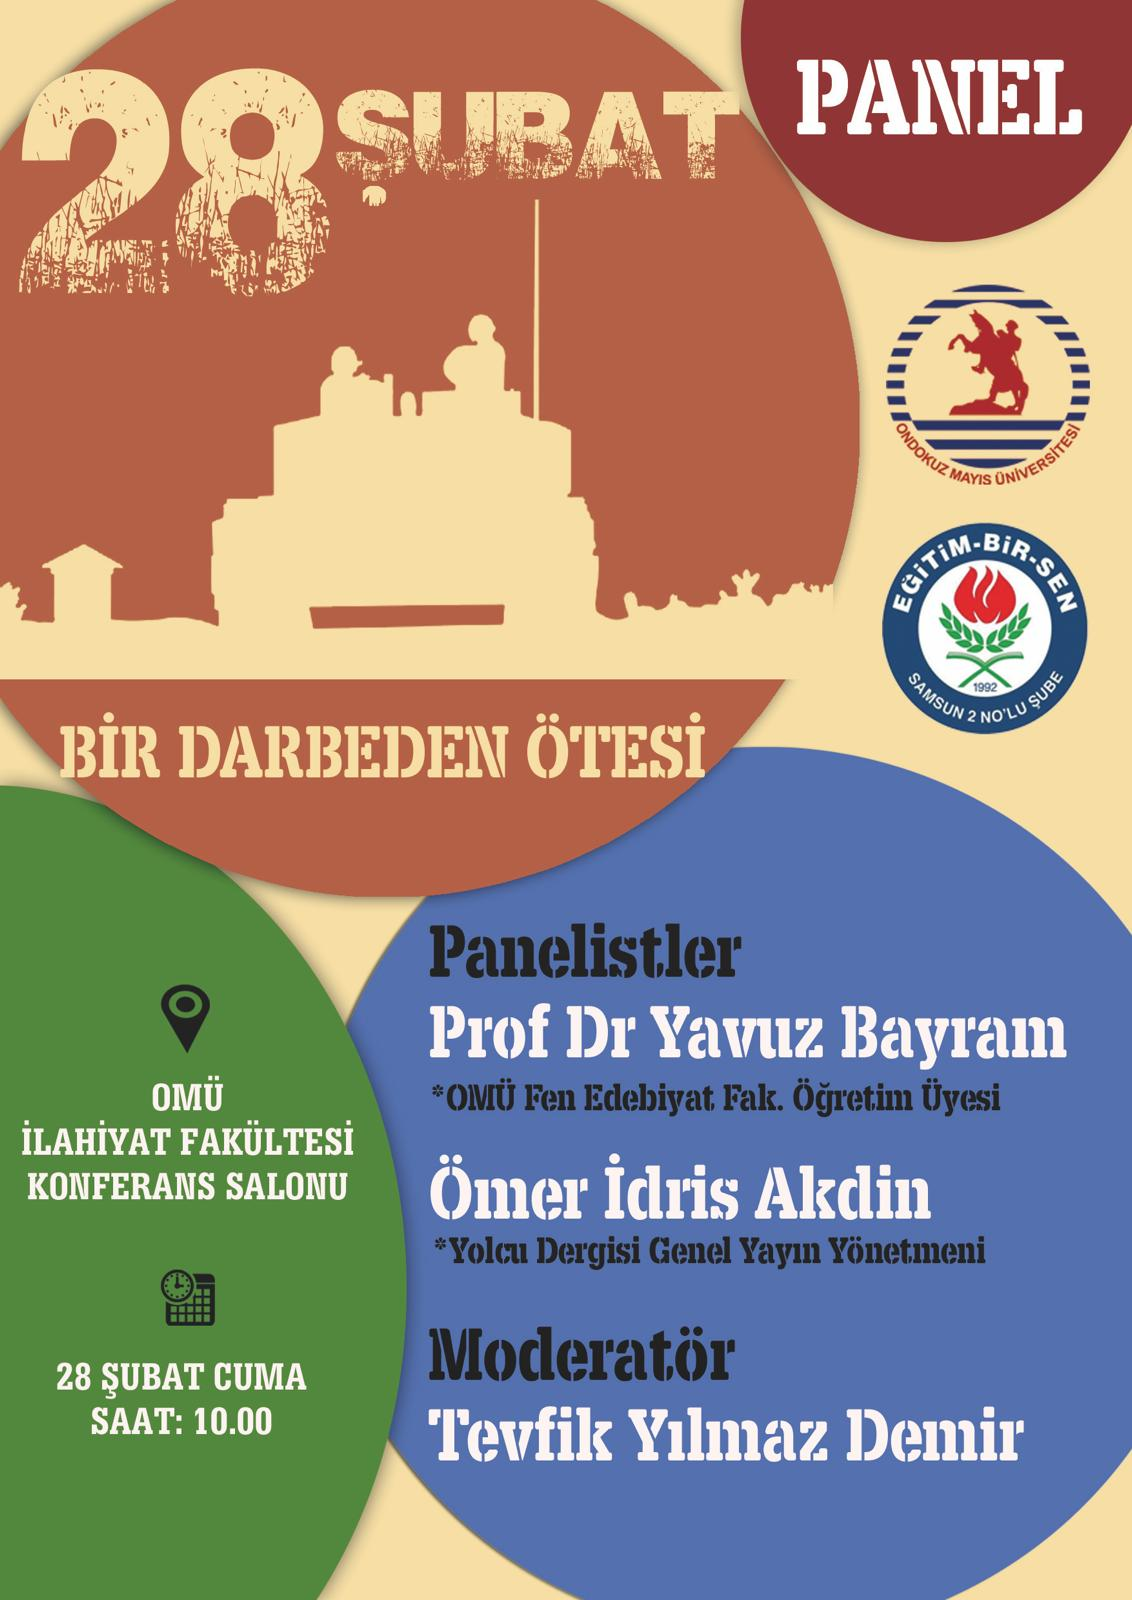 http://www.omu.edu.tr/sites/default/files/omu_28_subat_bir_darbeden_otesi.jpeg